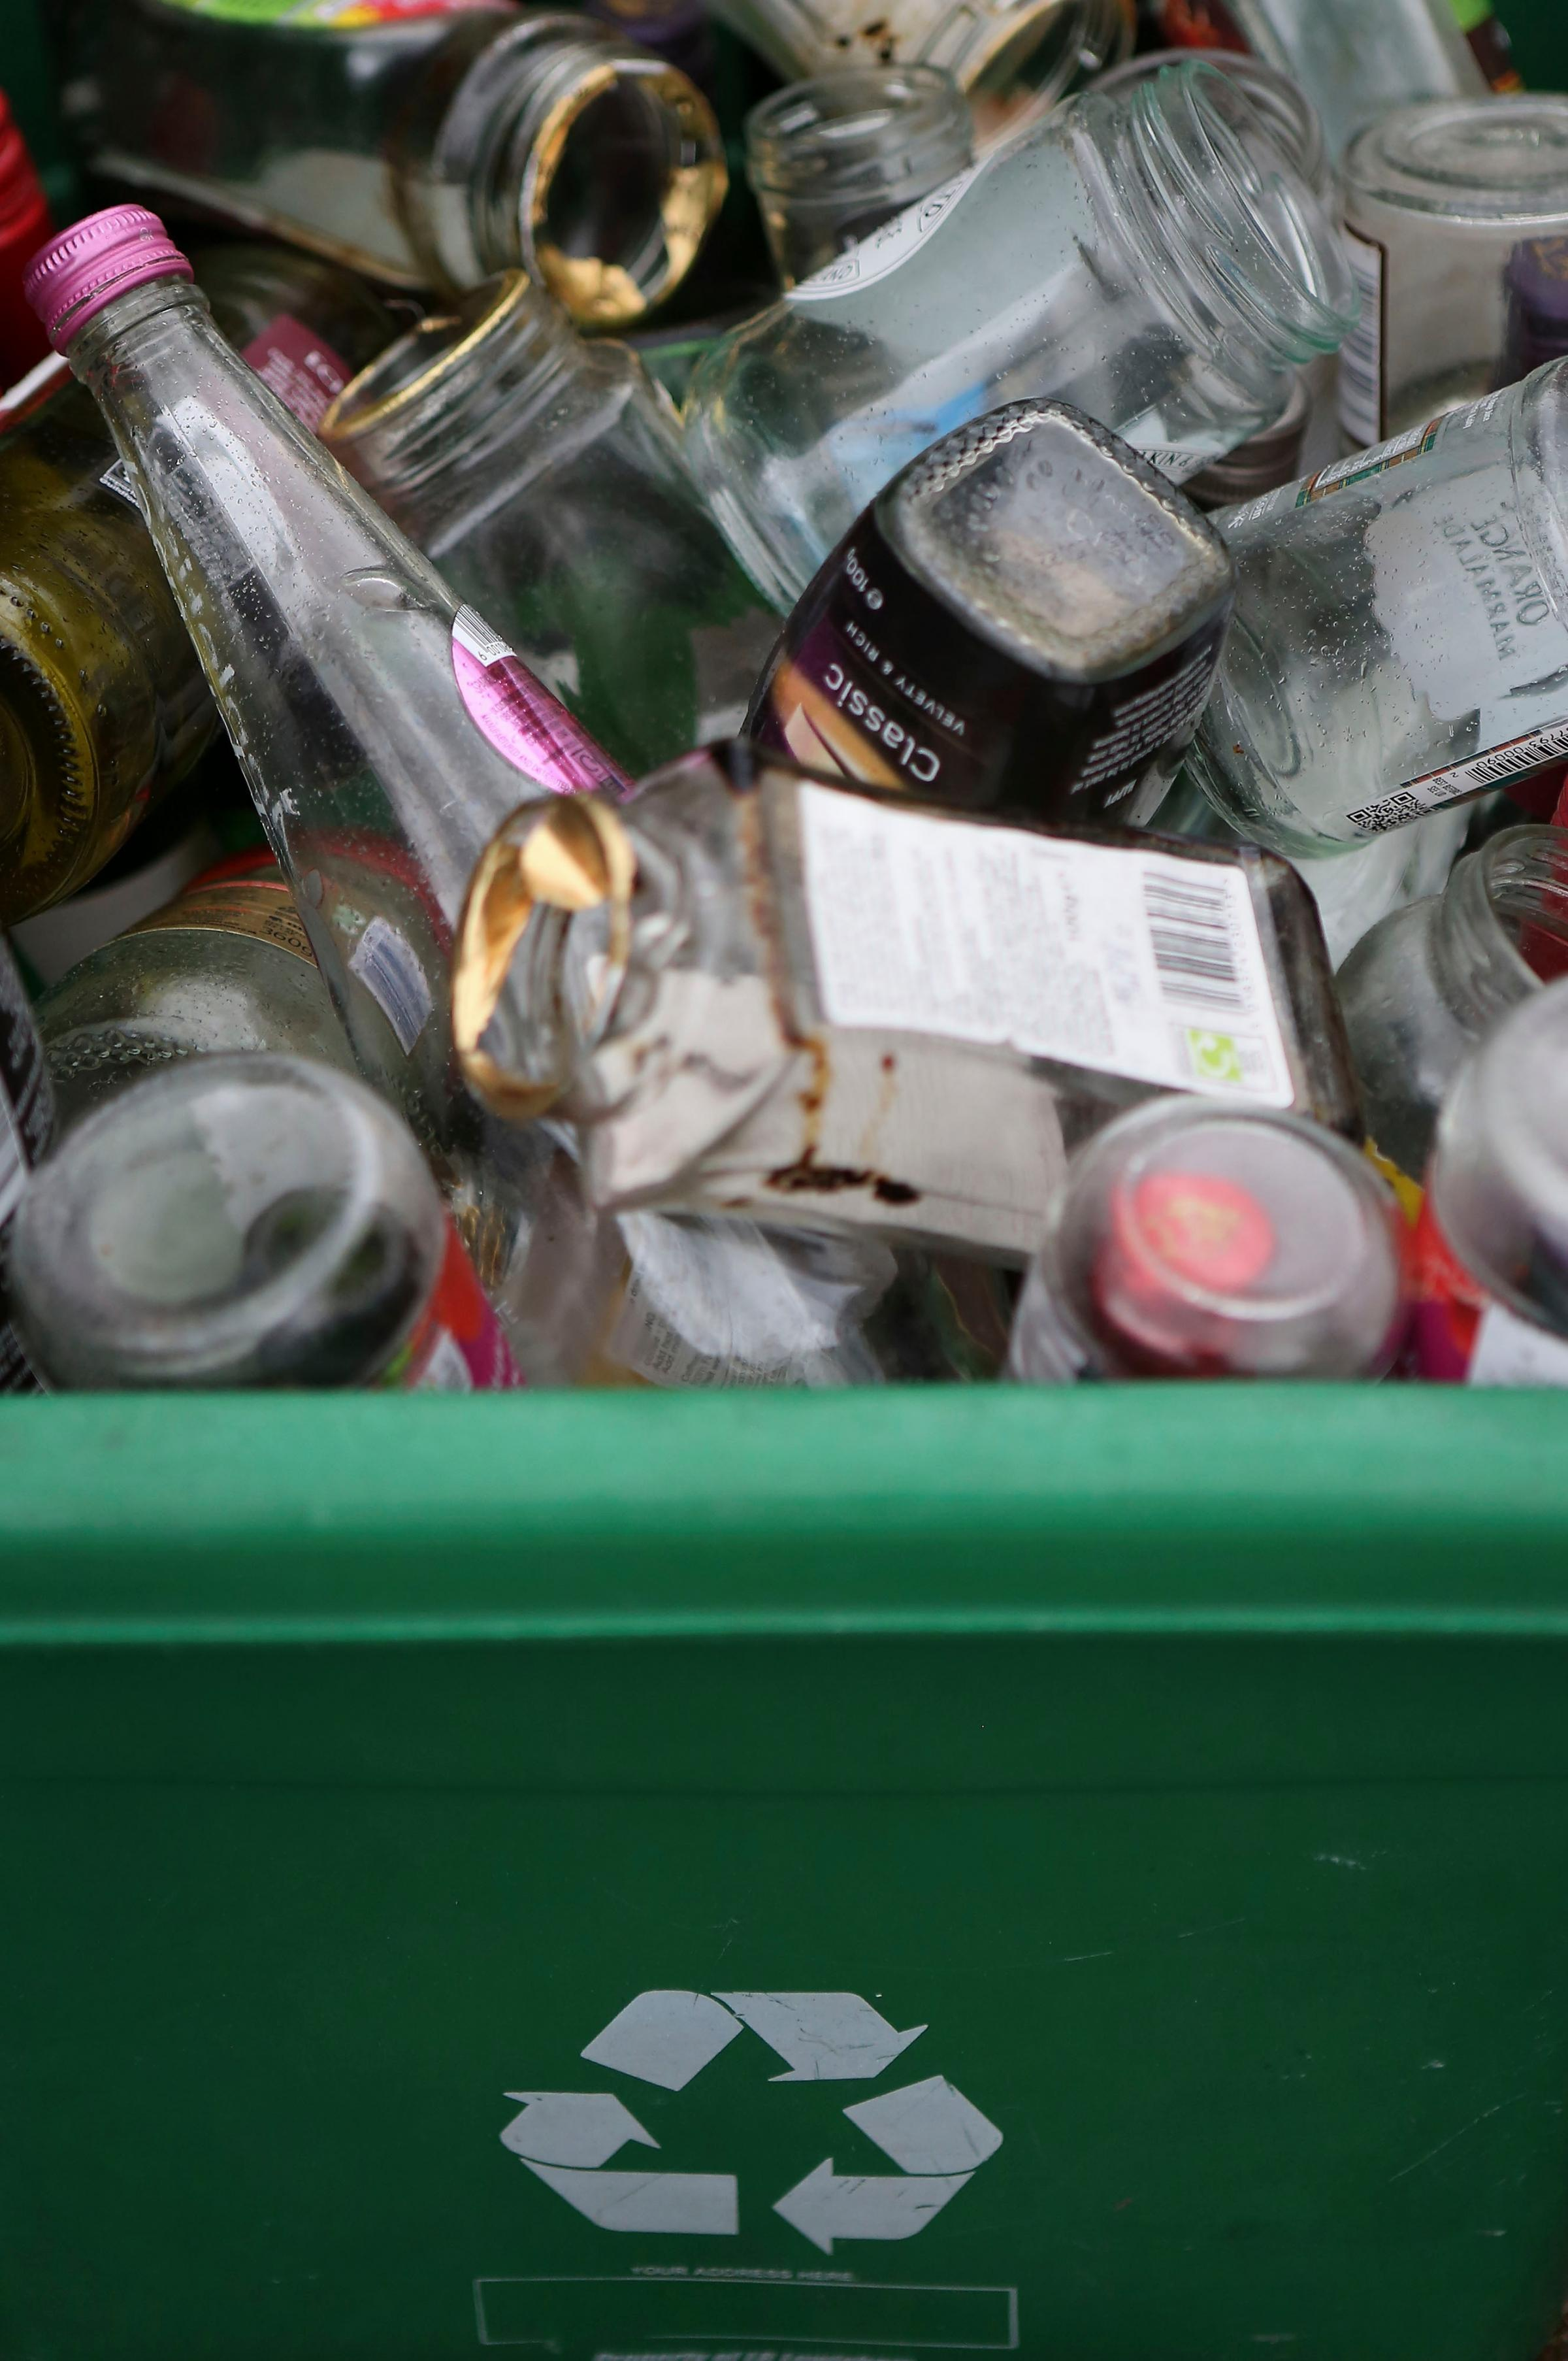 Households should be recycling more than they throw away